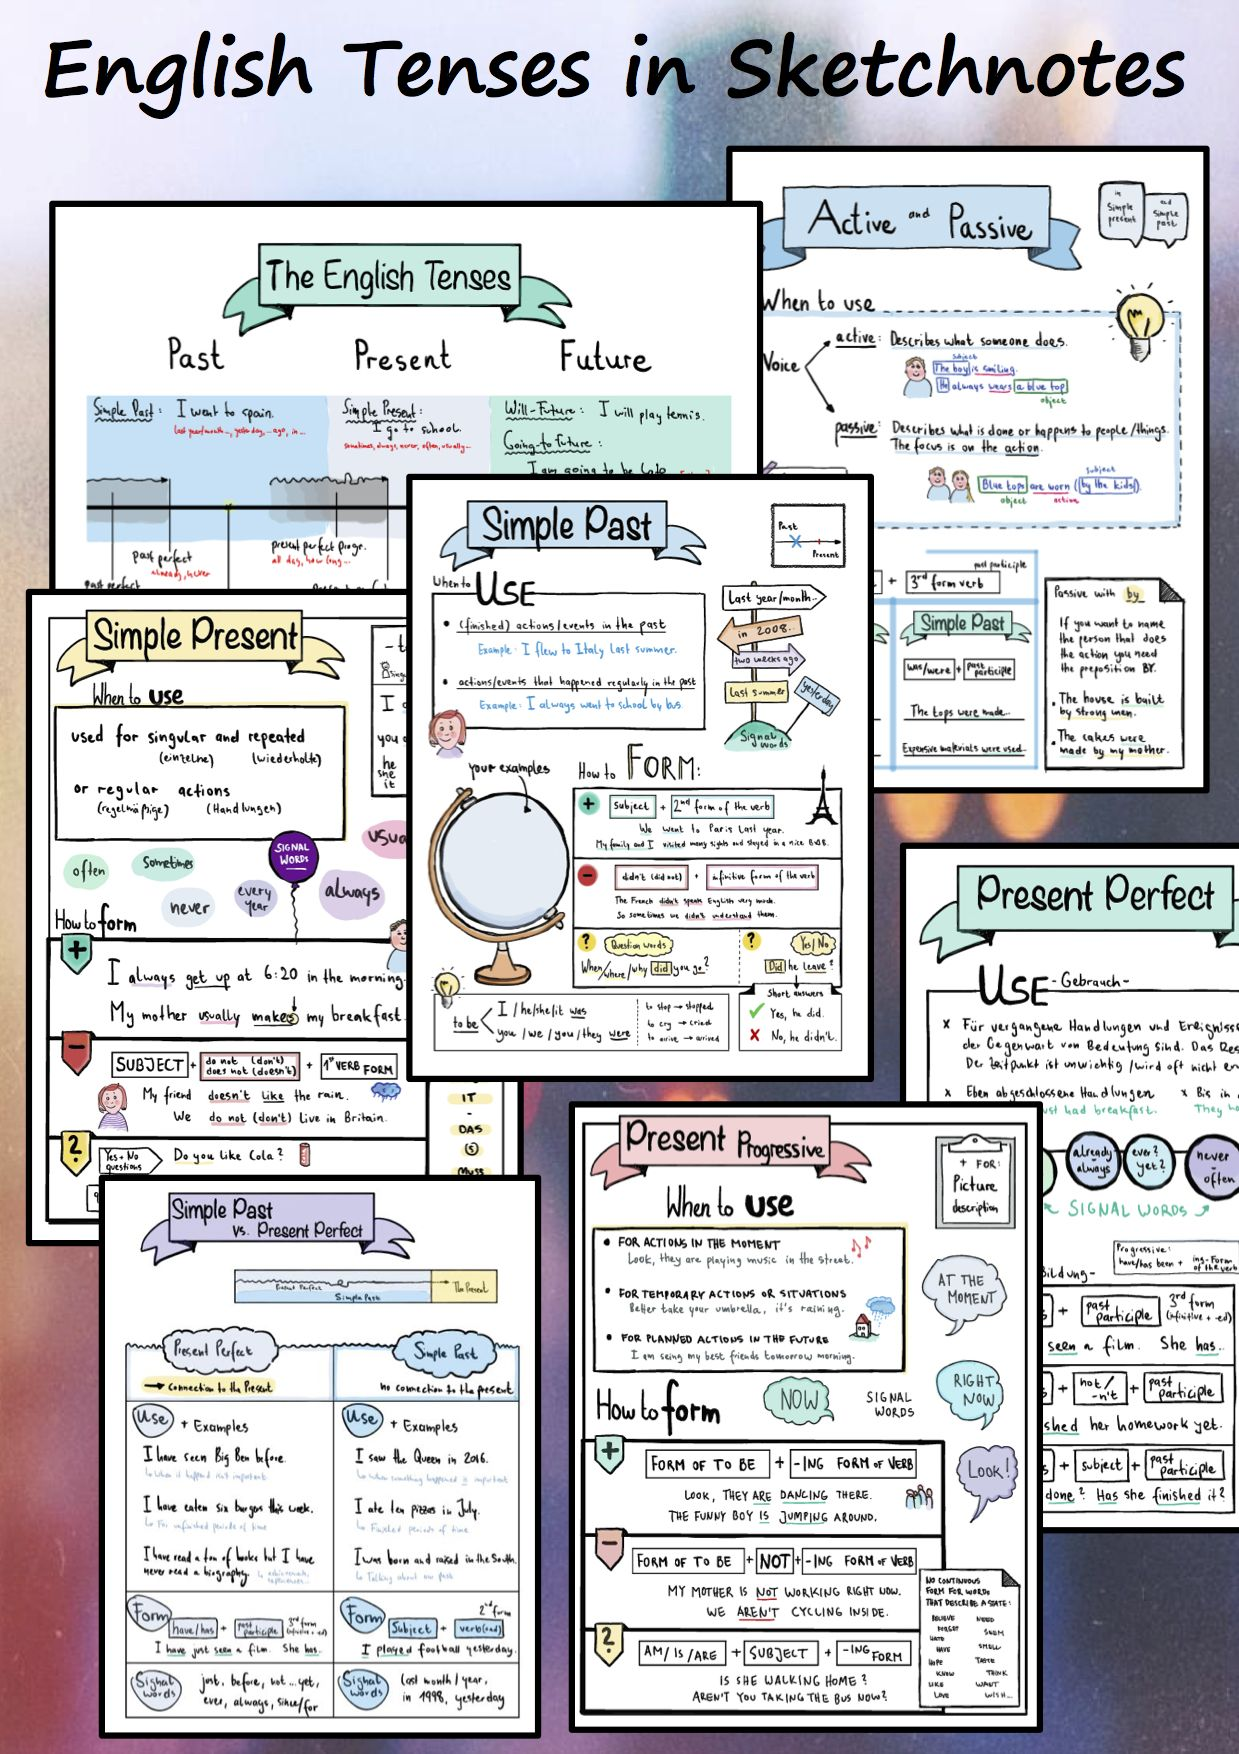 The English Tenses In Sketchnotes